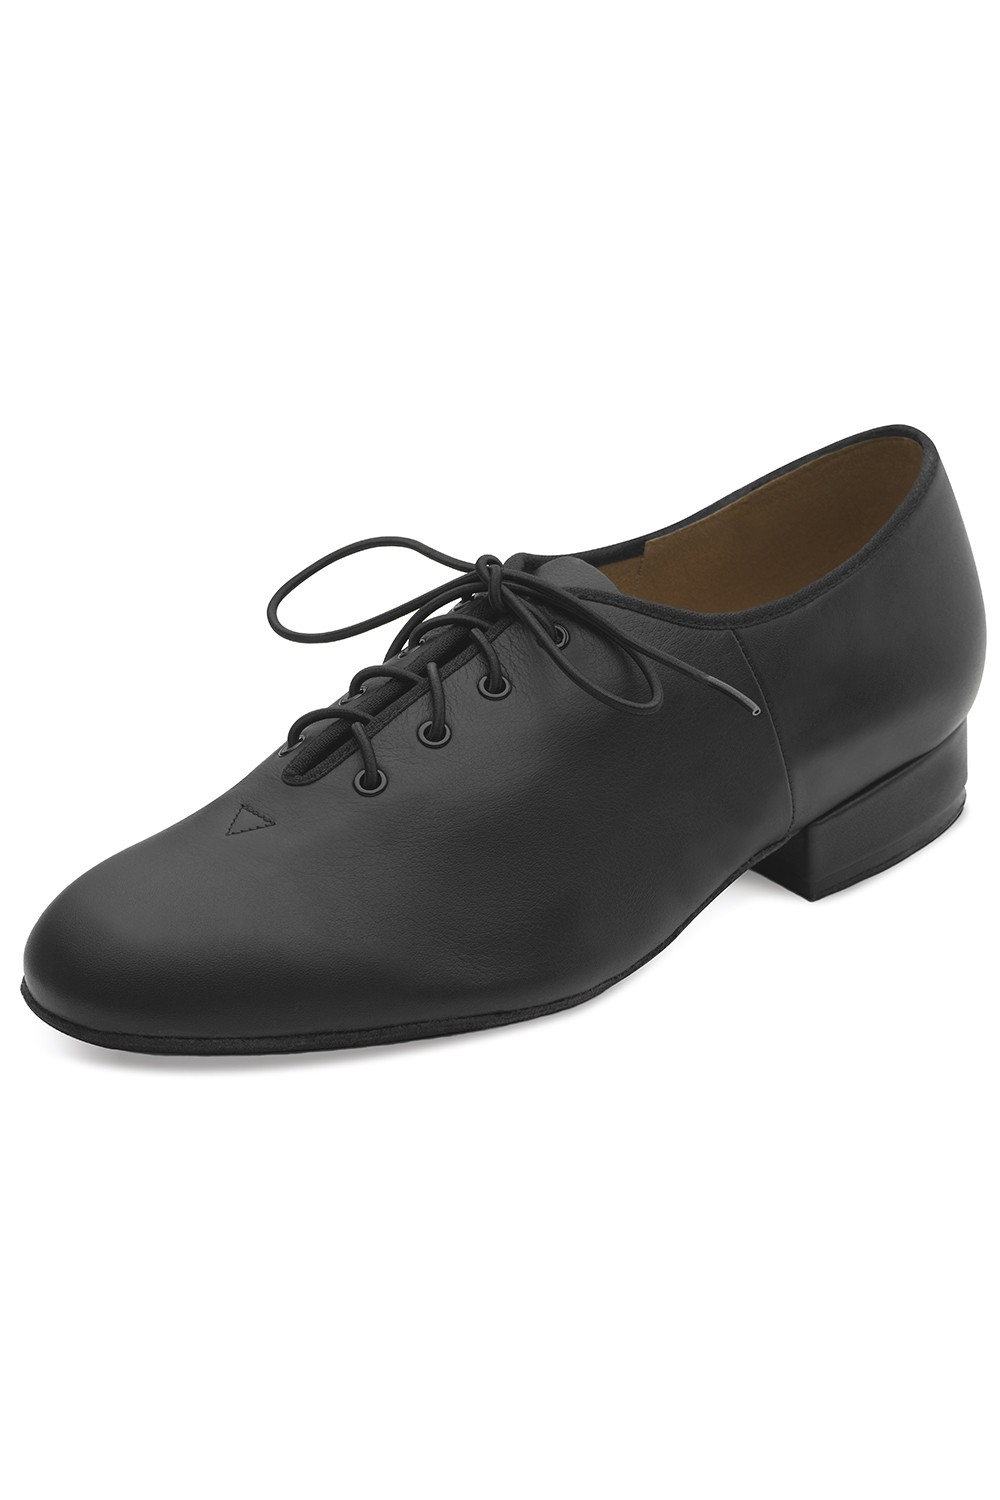 Jazz Oxford Men's Jazz Shoes